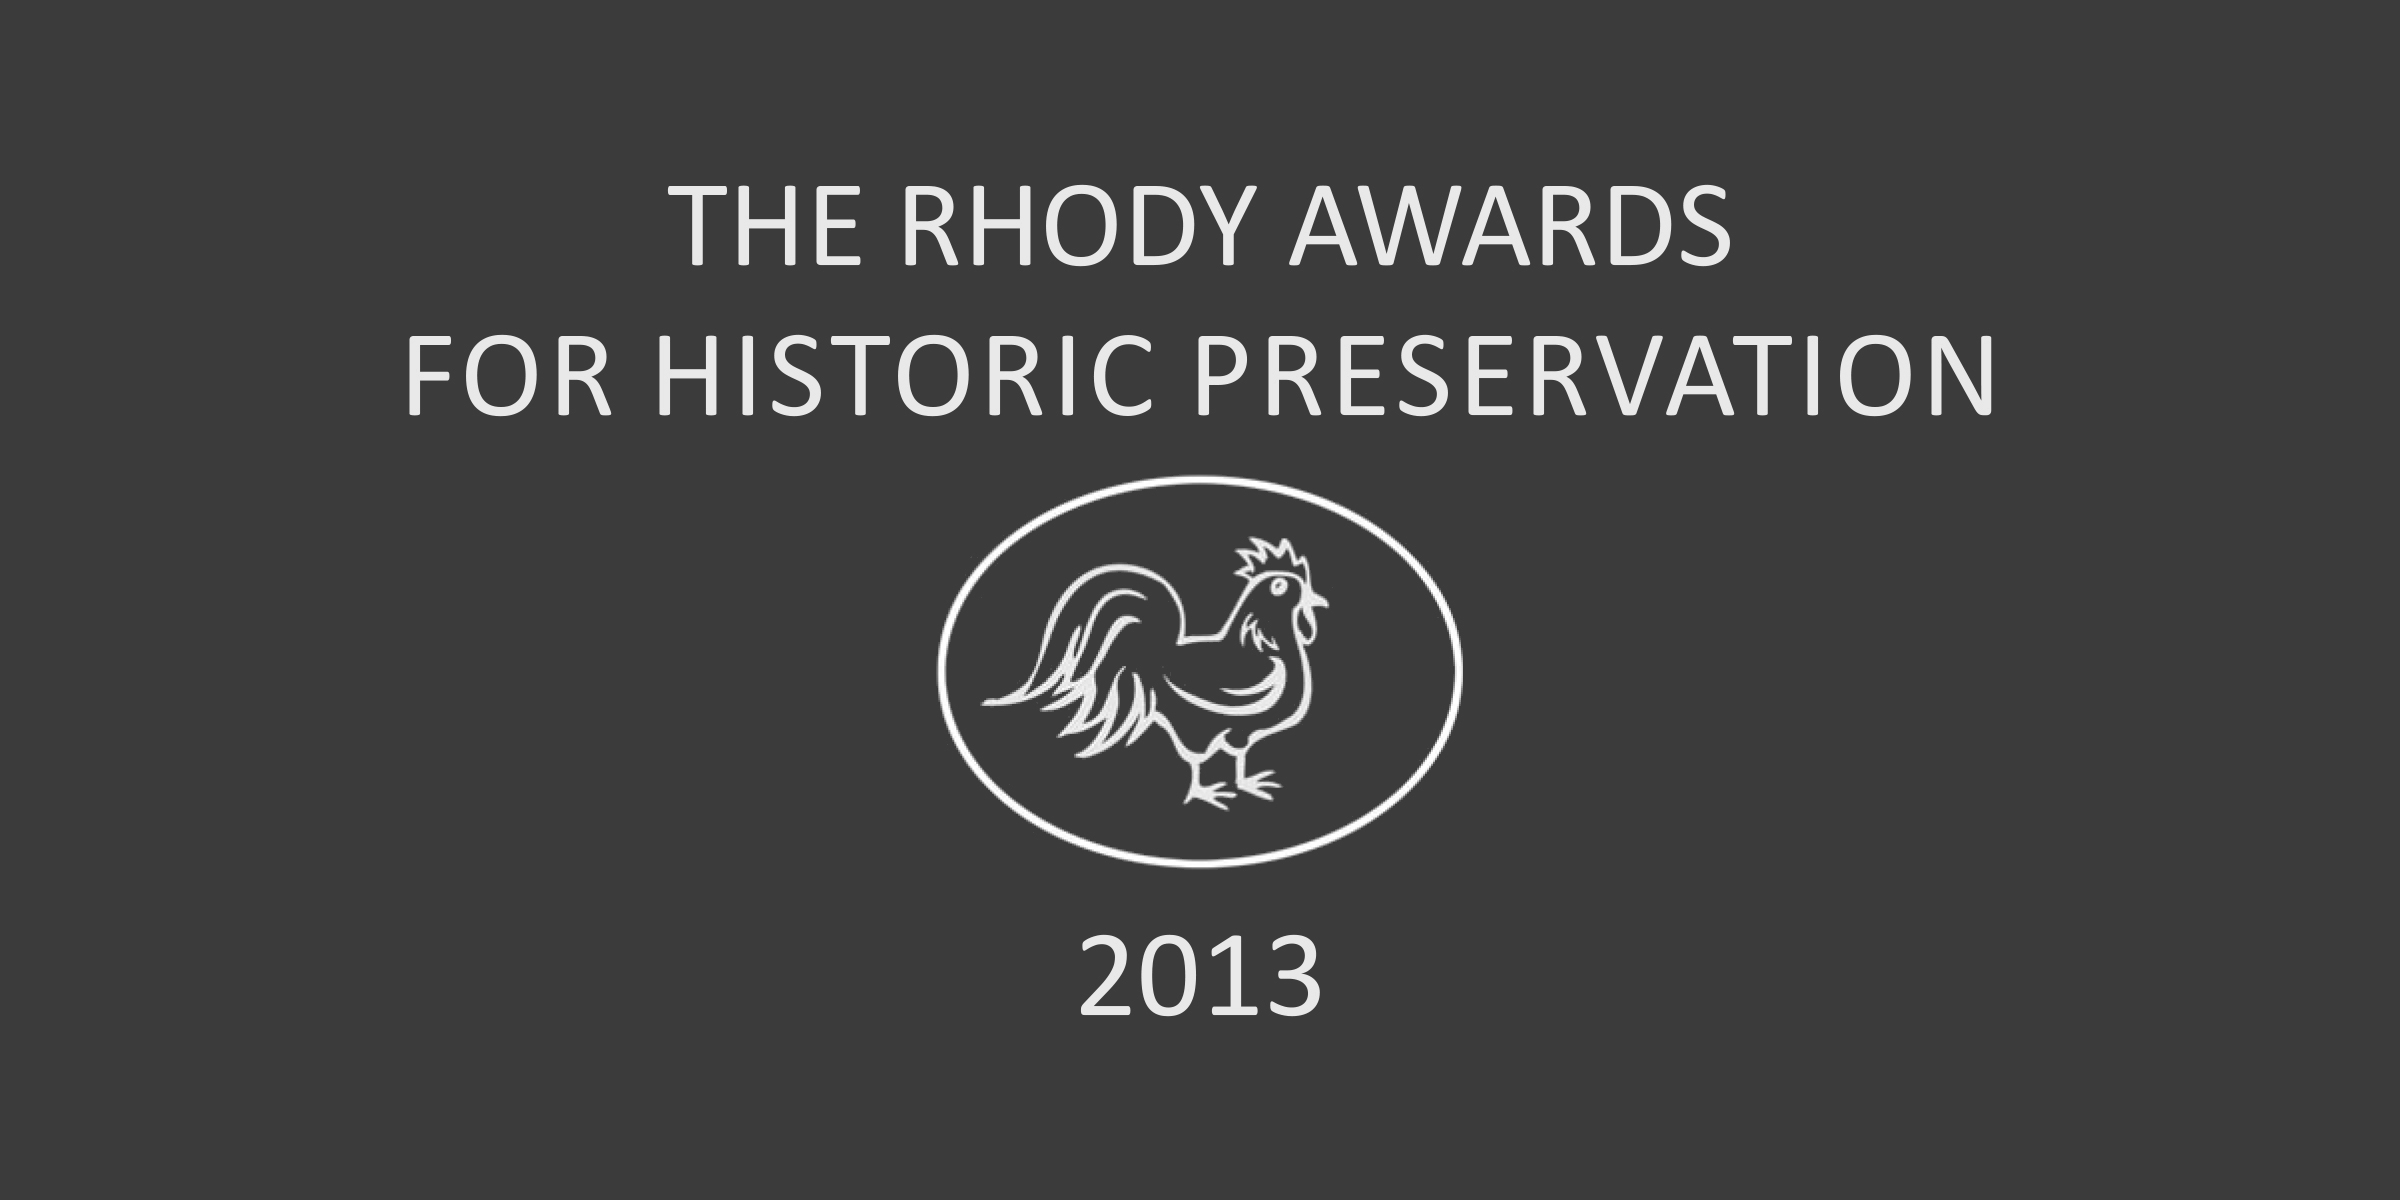 Historic preservation awards for R.I. announced – PBN